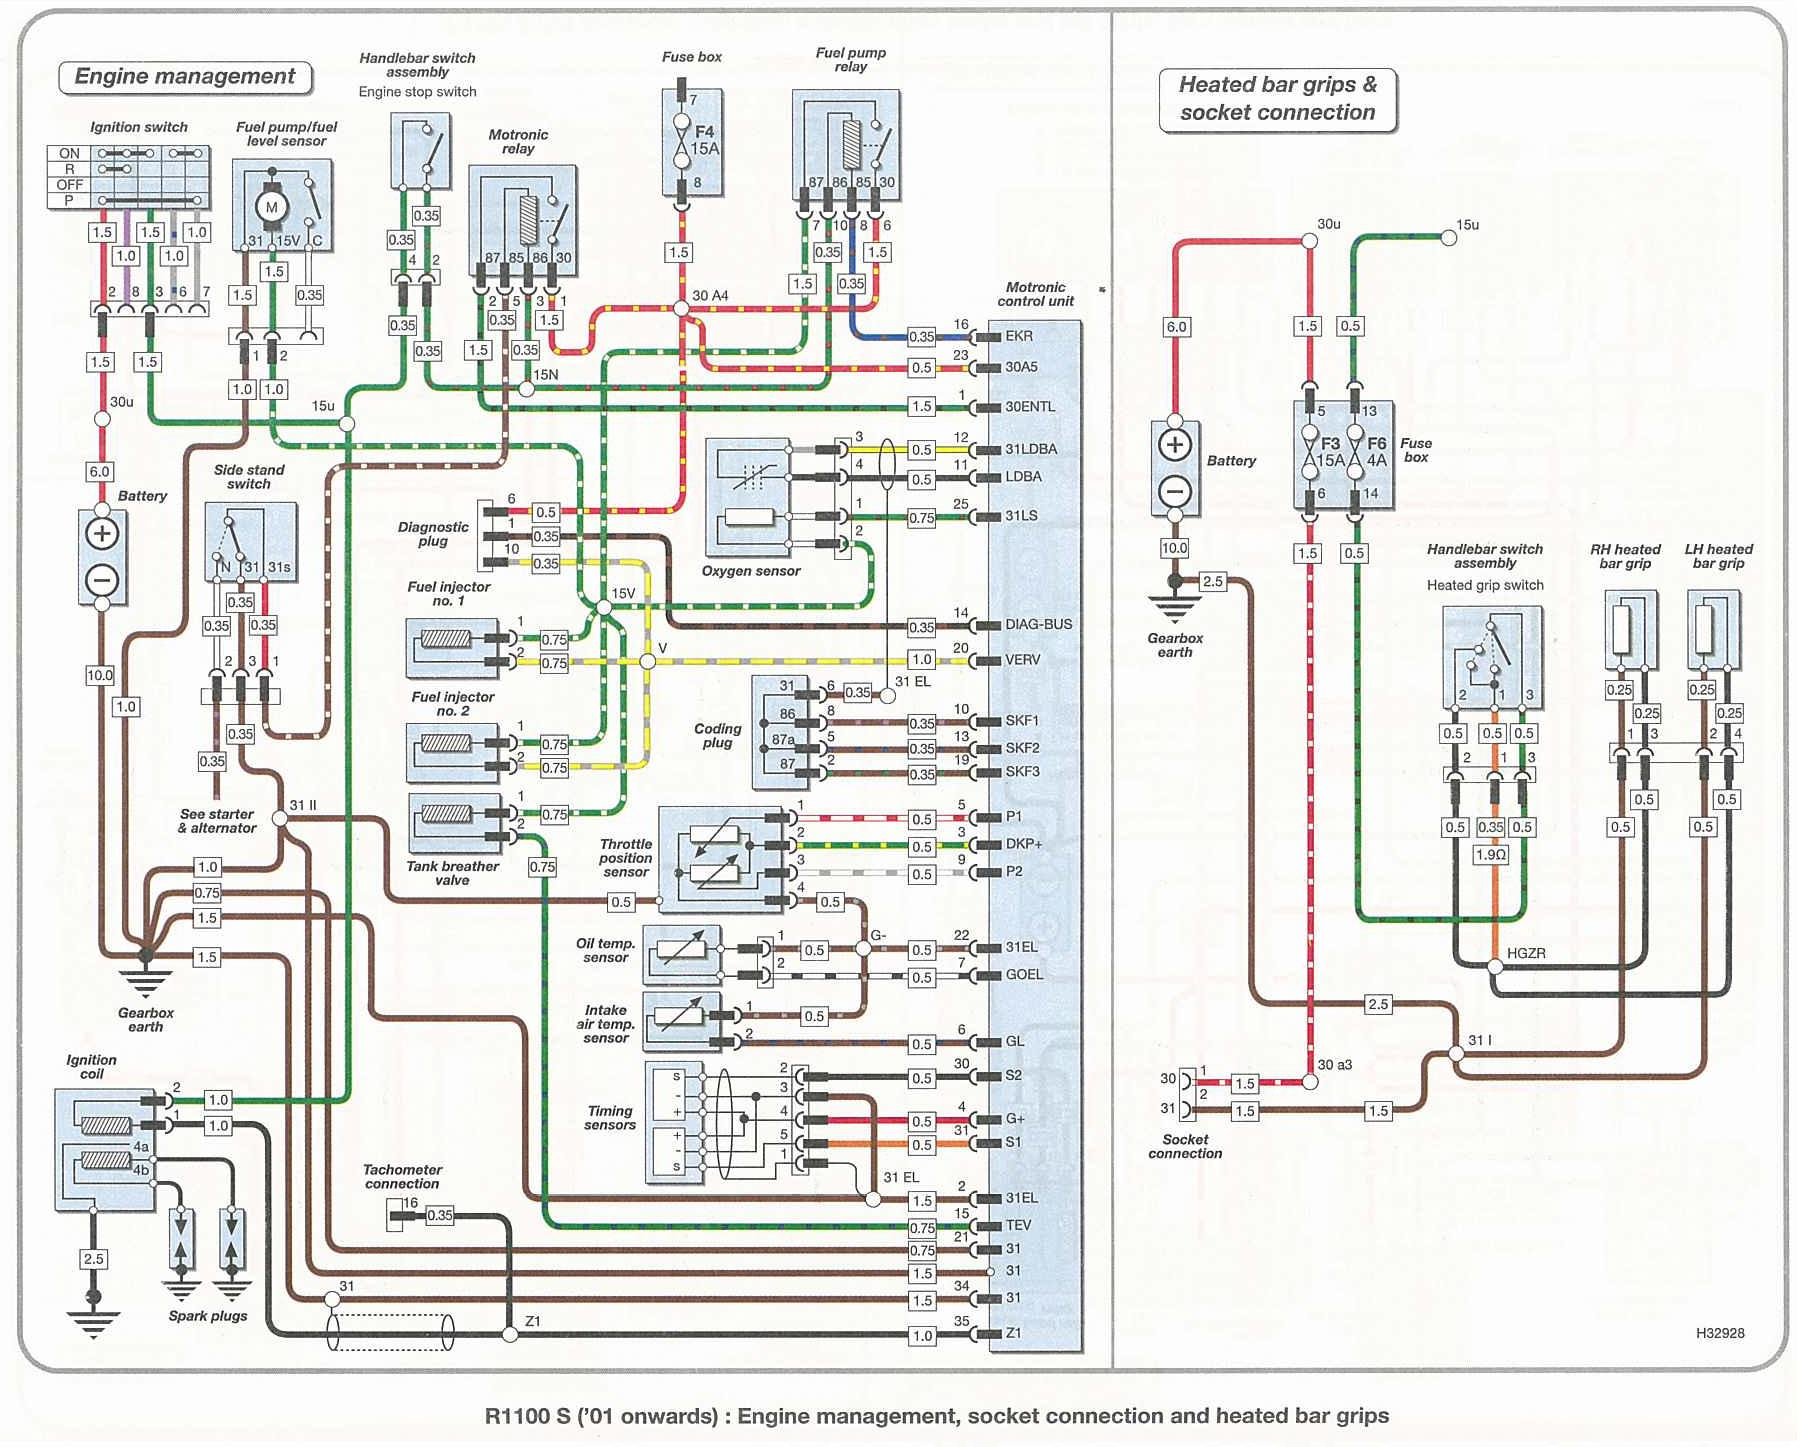 wiring07 bmw r1100s wiring diagrams bmw r1100r wiring diagram at gsmportal.co